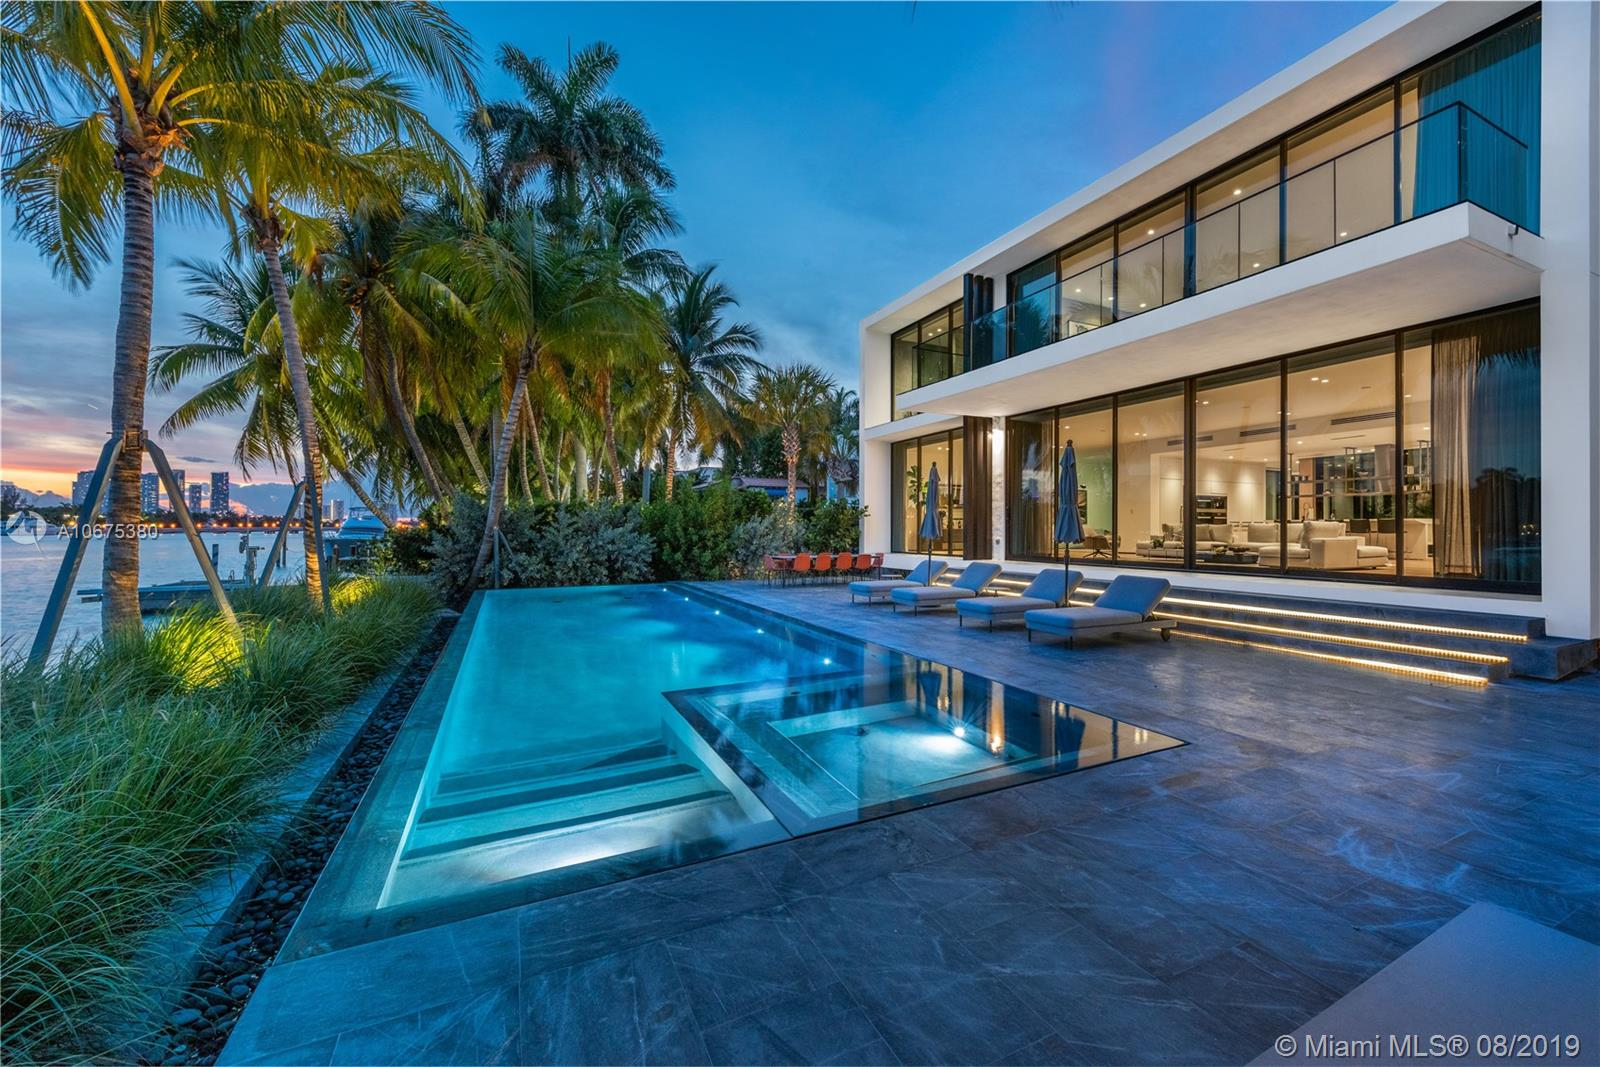 New Modern, Uniquely Designed Elevated +Ógé¼+Ôglass+Ógé¼ House On Gated And Secured Hibiscus Island. Southern Exposure, Panoramic Views Of Biscayne Bay And Downtown. Private Entry Garden Capturing Sea Breeze With An Open Floor Plan With Tall 20+Ógé¼Gäó Ceiling Entry Leading To Glassed Central Courtyard Adding Natural Light And Enhancing Views. Spacious Master Suite, Captivating Scenes And Oversized Terrace.Rare Separate Guest House With Full Kitchen And 2 Car Garage.Custom Furniture Professionally Decorated Throughout. Sleek Pool With Concealed Equipment And Infinity Edge, Outdoor Kitchen And Custom Outdoor Seating. Elevator Leading To Private Rooftop Terrace. Island Amenities Include Tennis Basketball, Playground, Newly Paved Streets, New Utilities, New Landscaping And Police Protection.